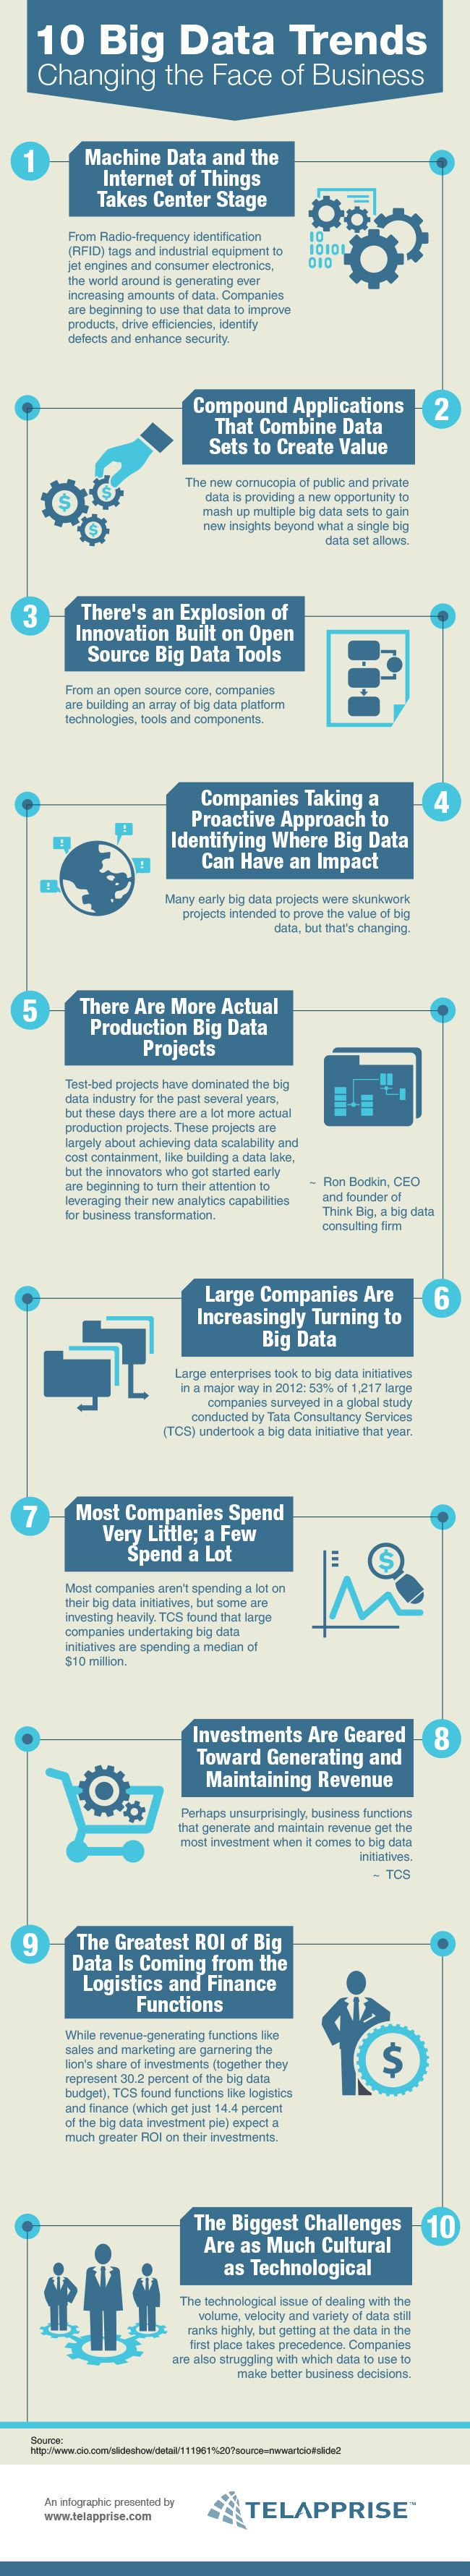 10 Big Data Trends - Changing the Face of Business #bigdata #infographic